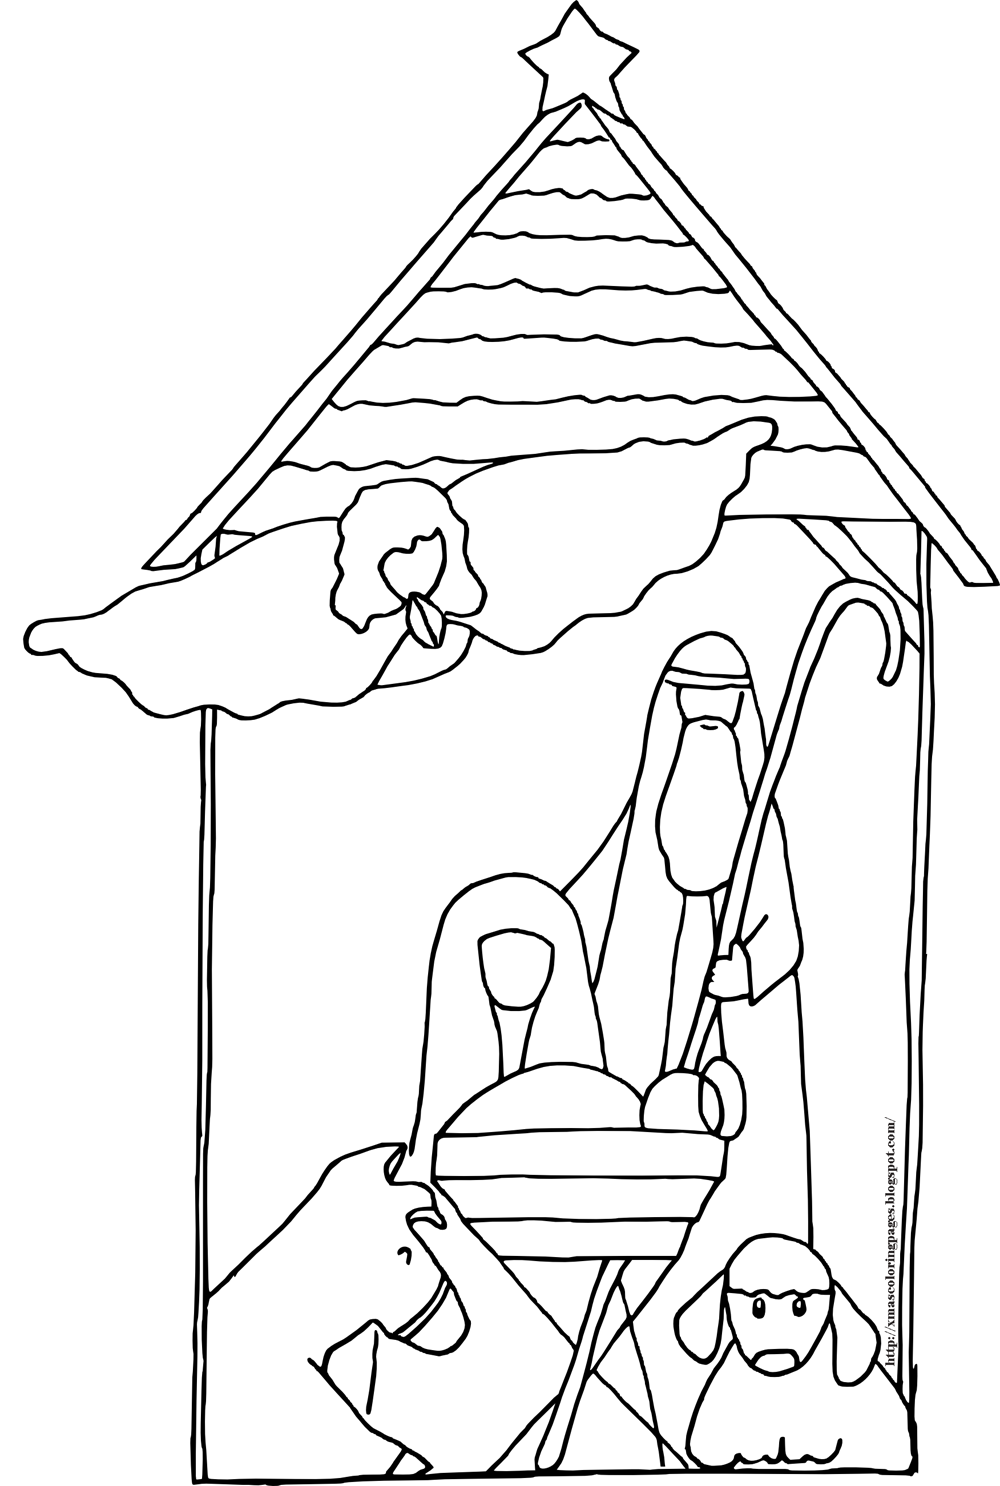 free baby jusus coloring pages - photo#18